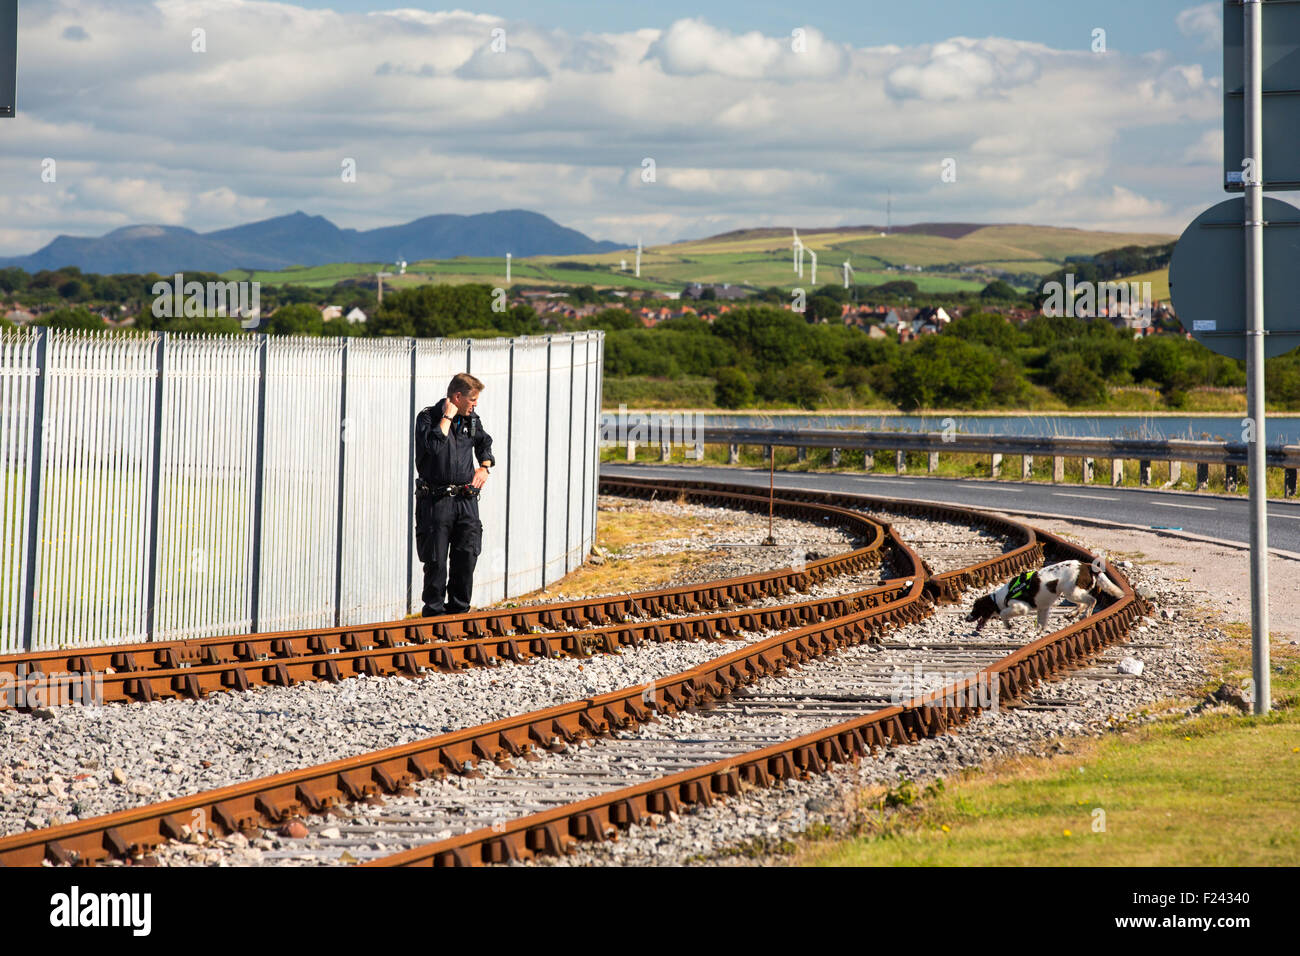 A police man with sniffer dog clears the railway tracks in preparation for moving the Artful, an Astute class hunter - Stock Image